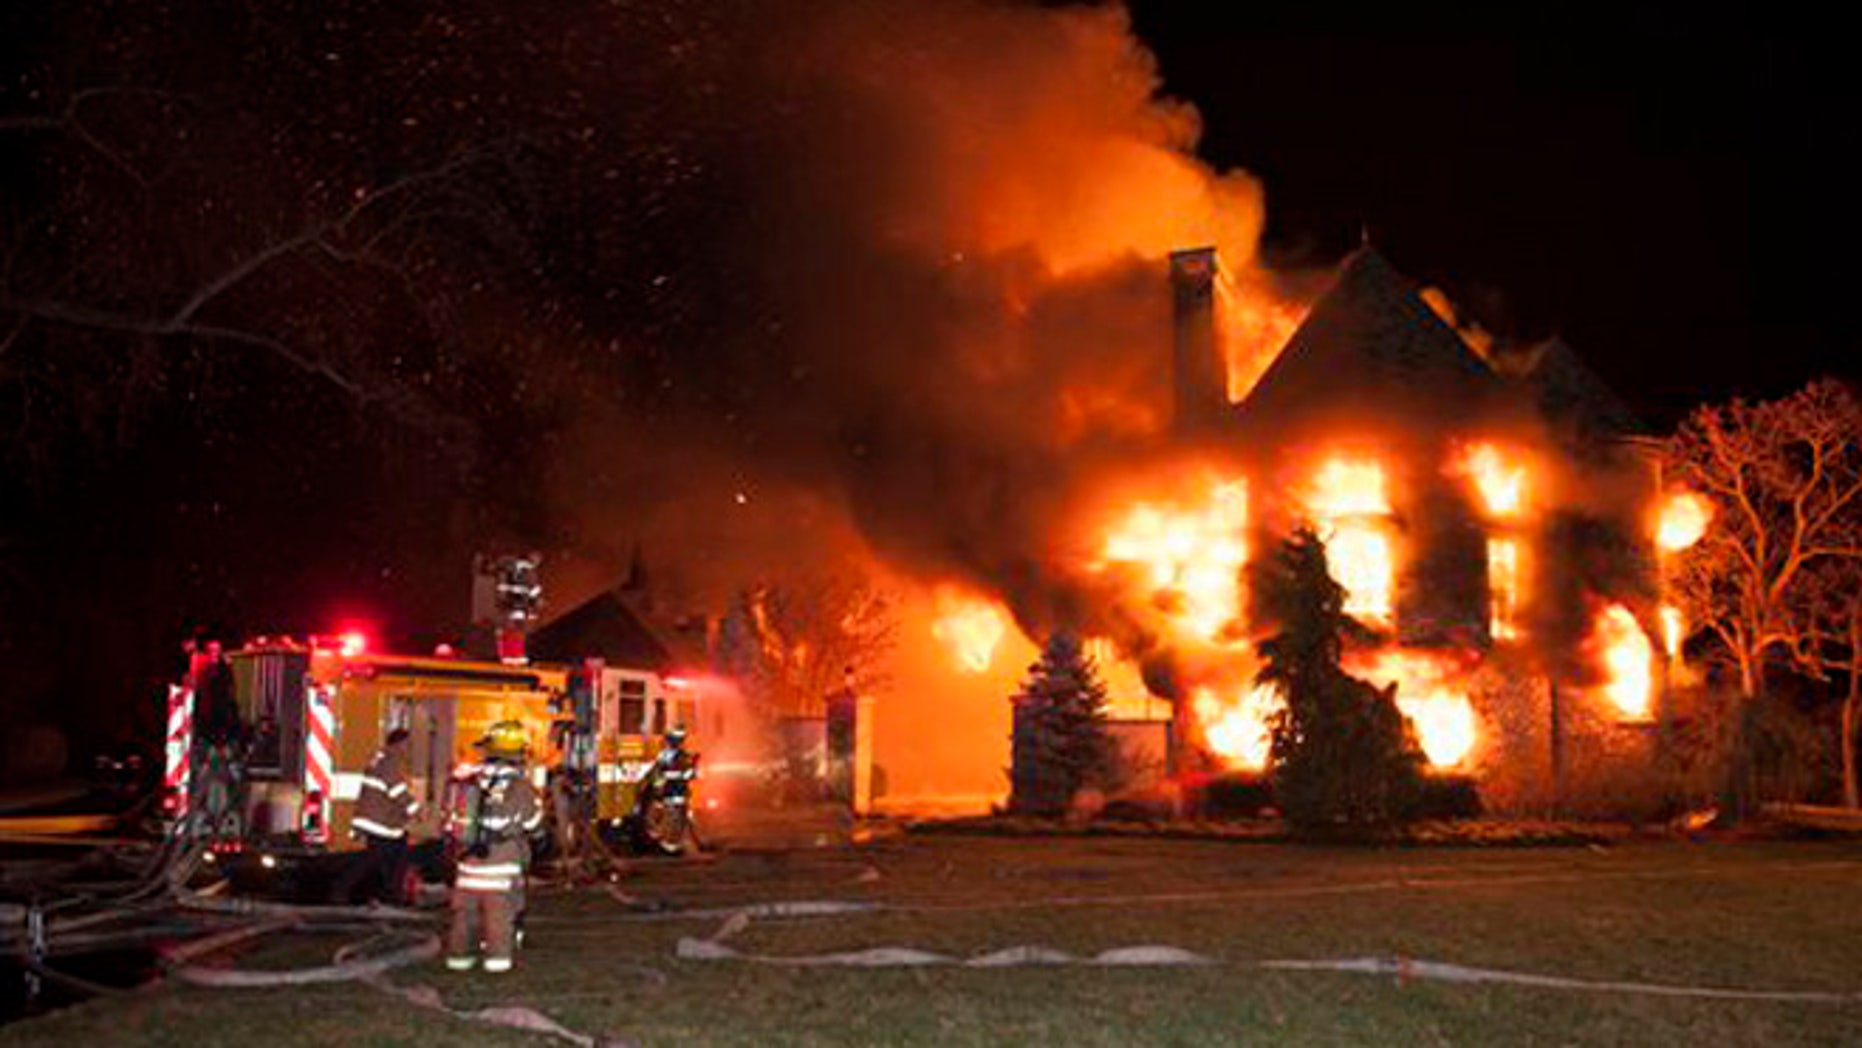 Jan. 19, 2015: In this file photo, firefighters battle a four-alarm fire at a home in Annapolis, Md.